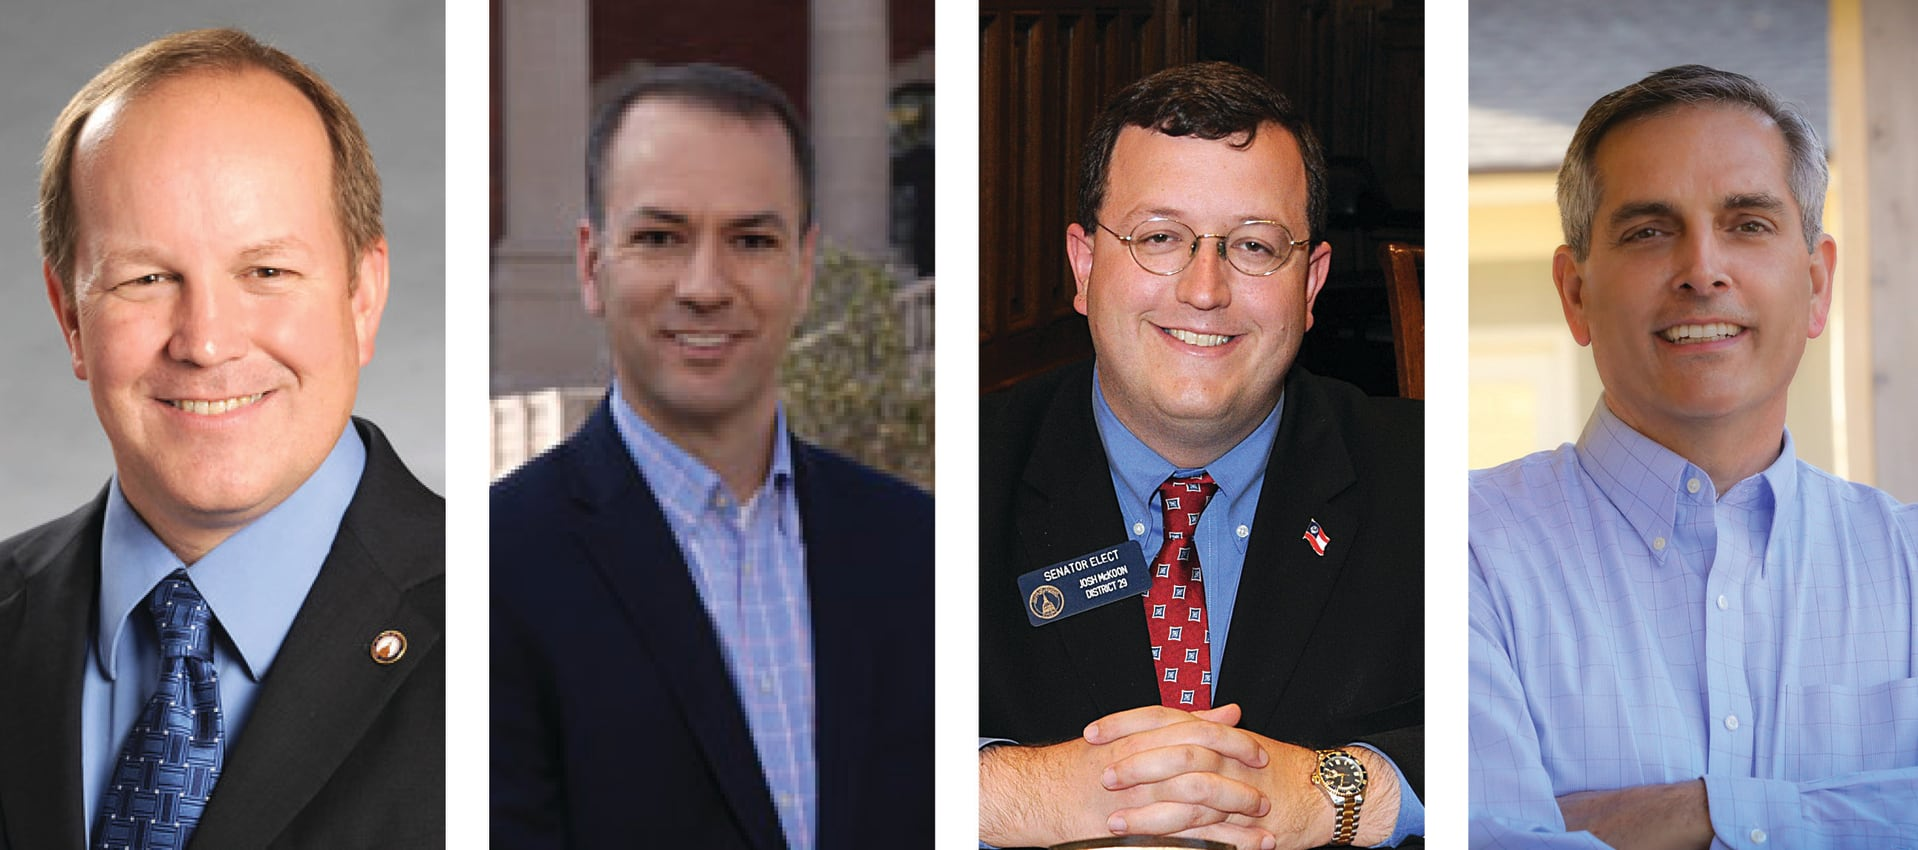 Secretary of State Candidate Forum in Macon on November 14, 2017